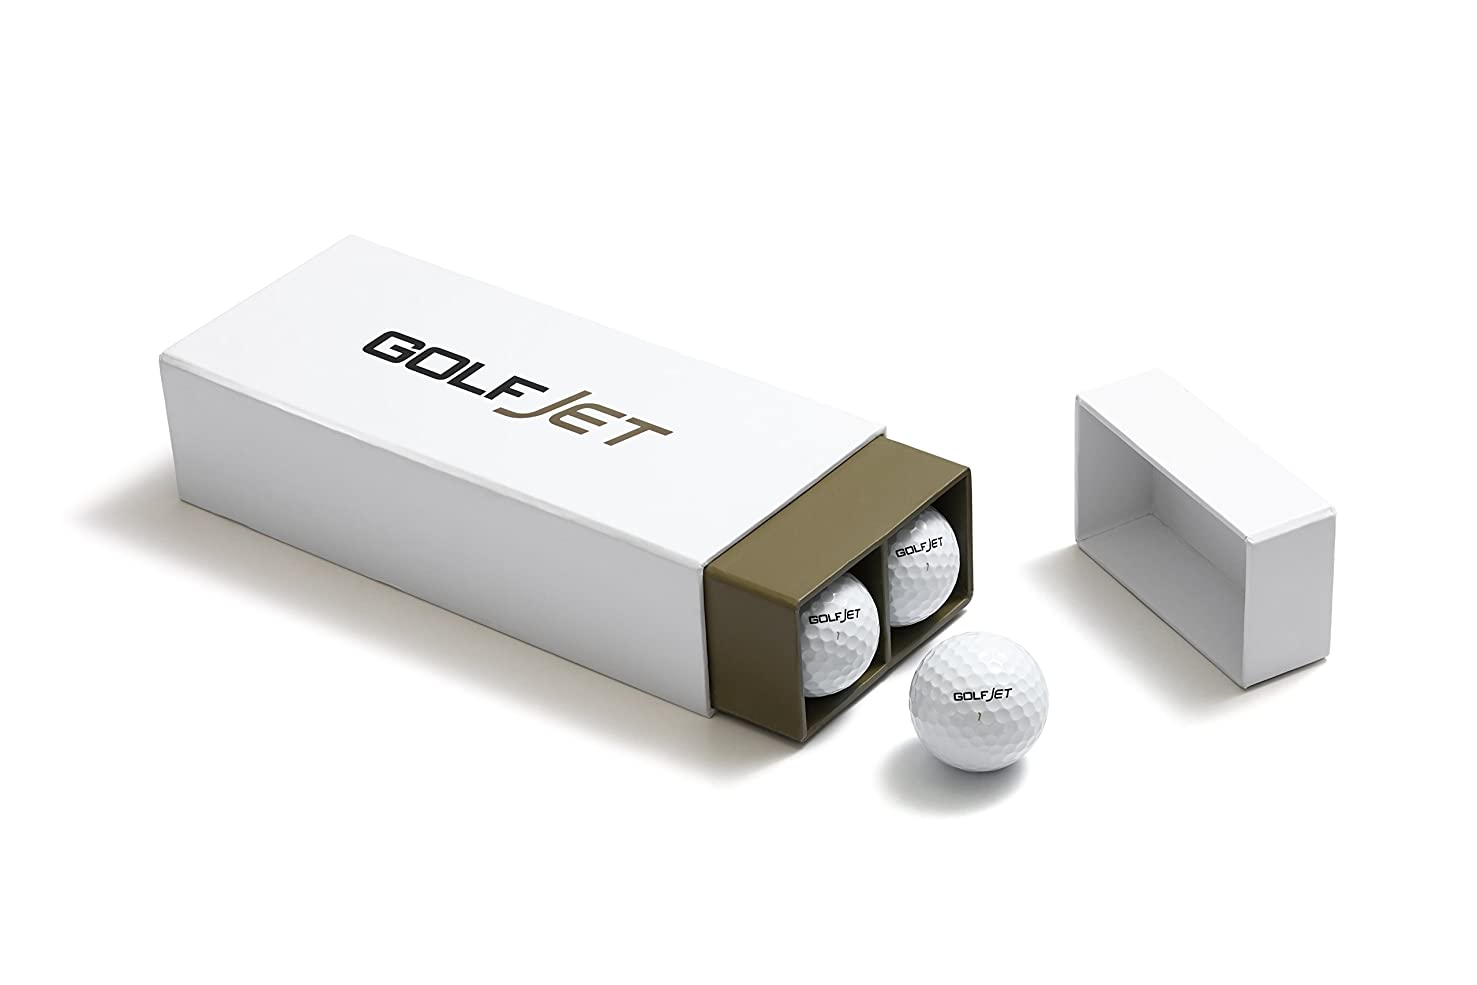 GolfJet JET4 Pack | One Dozen Premium JET4 Golf Balls. 4-Layer Twin Power Core, Ultrasoft 338 Dimple Hex Aero Urethane Cover. Longer Drives, More Game Spin, Optimum Feel for Ultimate Control.